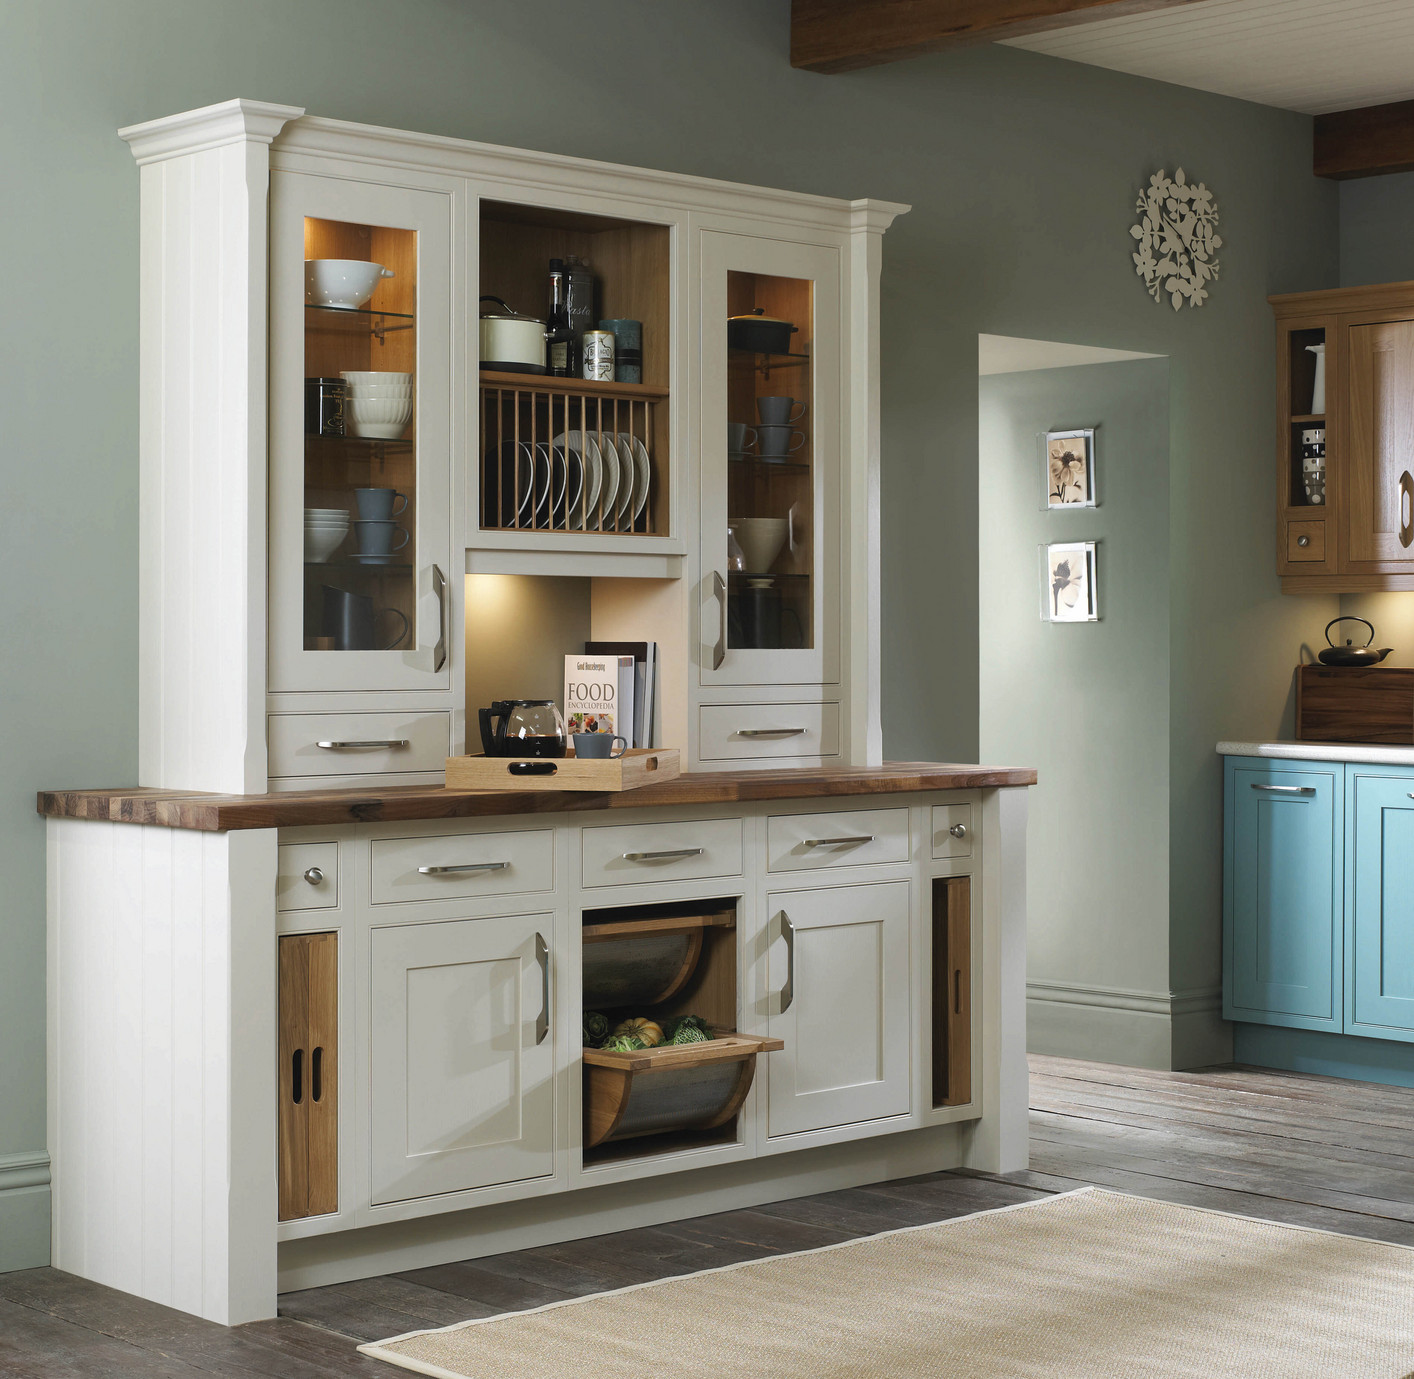 English revival period kitchen designs with a style for for Fitted kitchen dresser unit